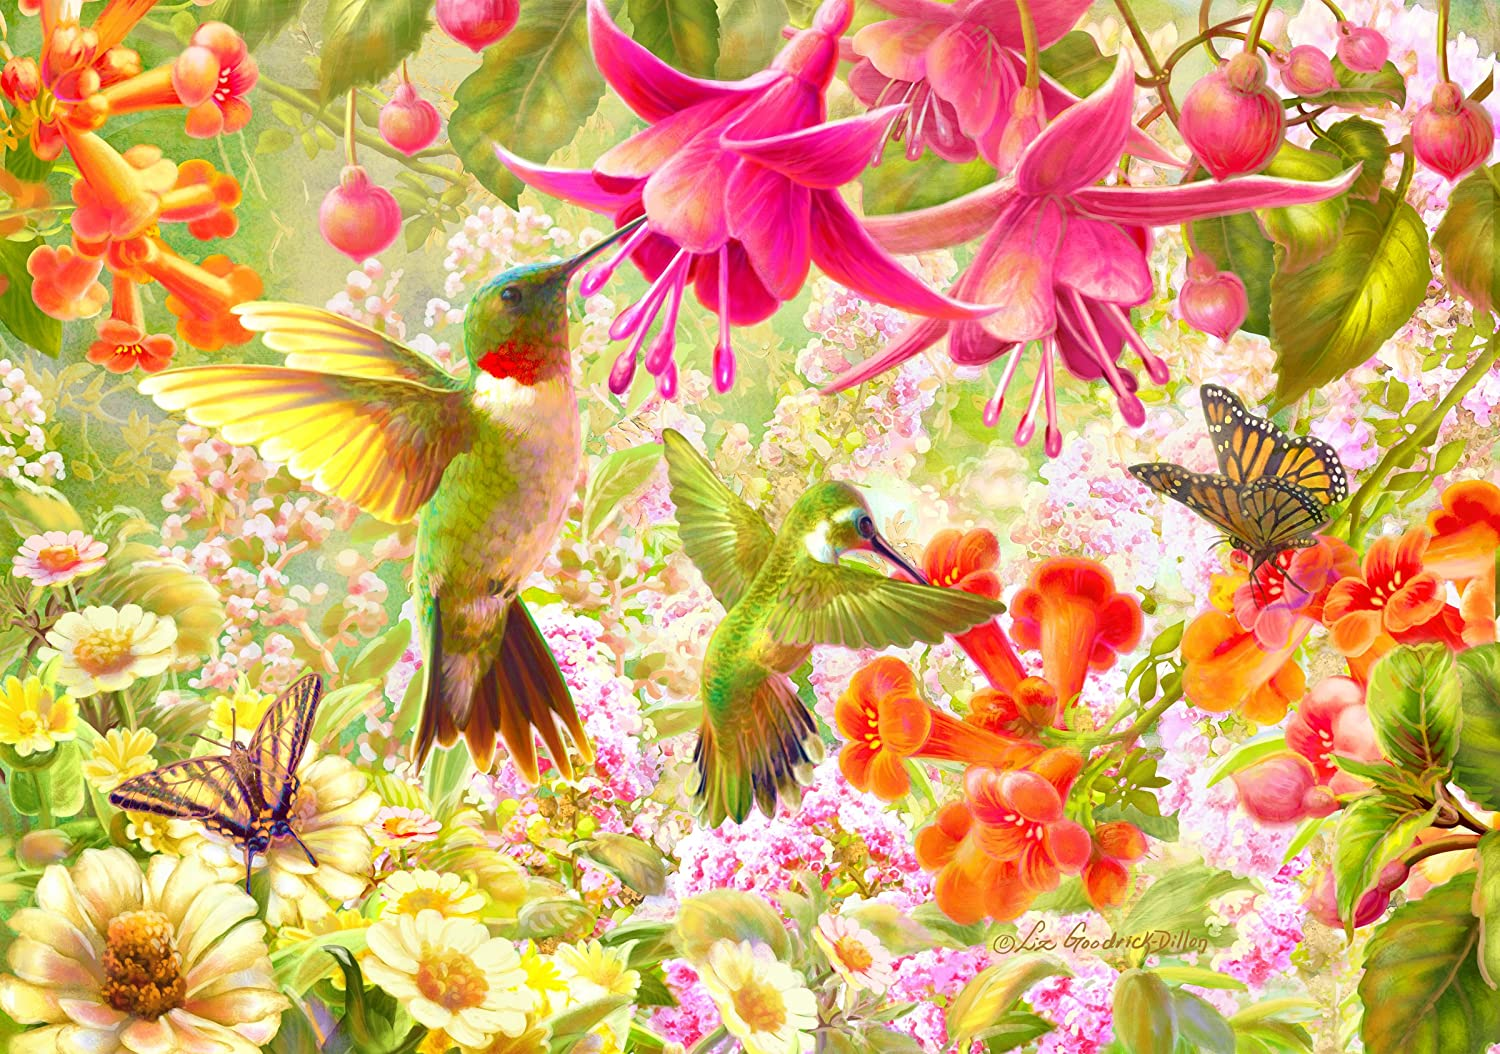 250pc Wentworth Wooden Jigsaw Puzzles - Hummingbird 250pc Wentworth Garden Hummingbird B079VM28JL, 着物なごみや:e9a4f2fe --- ero-shop-kupidon.ru